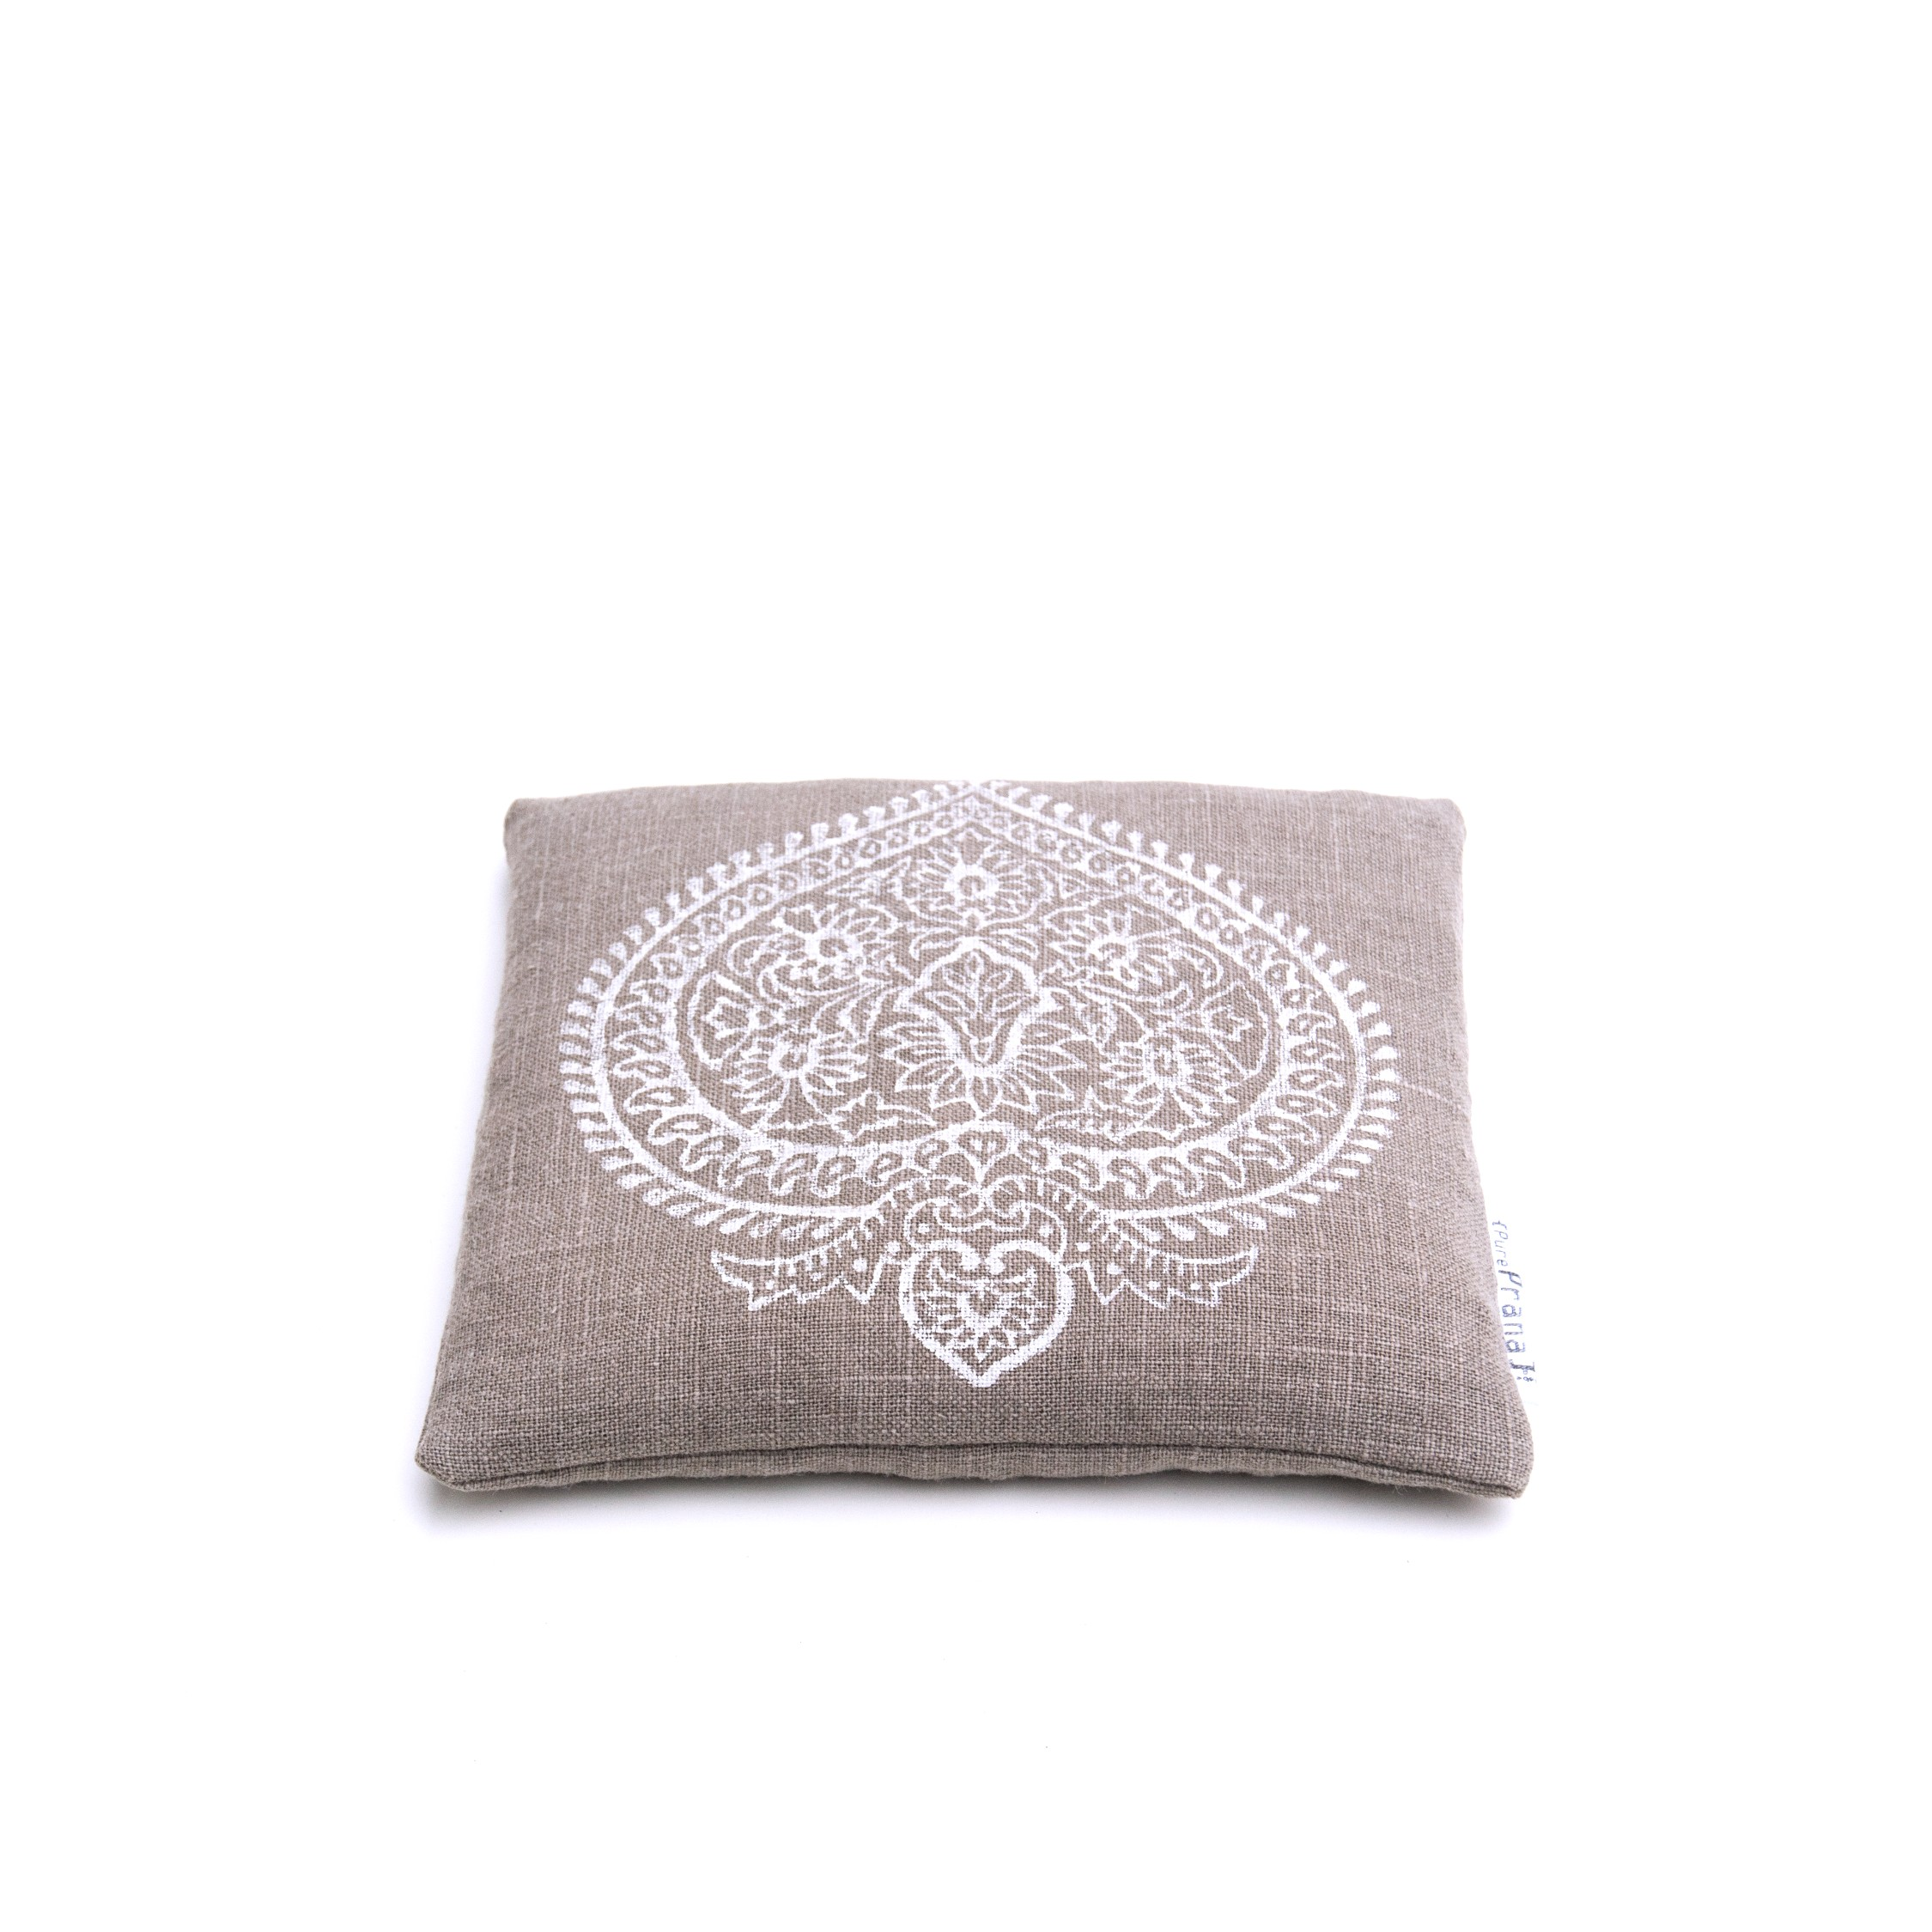 Singing bowl pillow Indian flower, organic flax linen